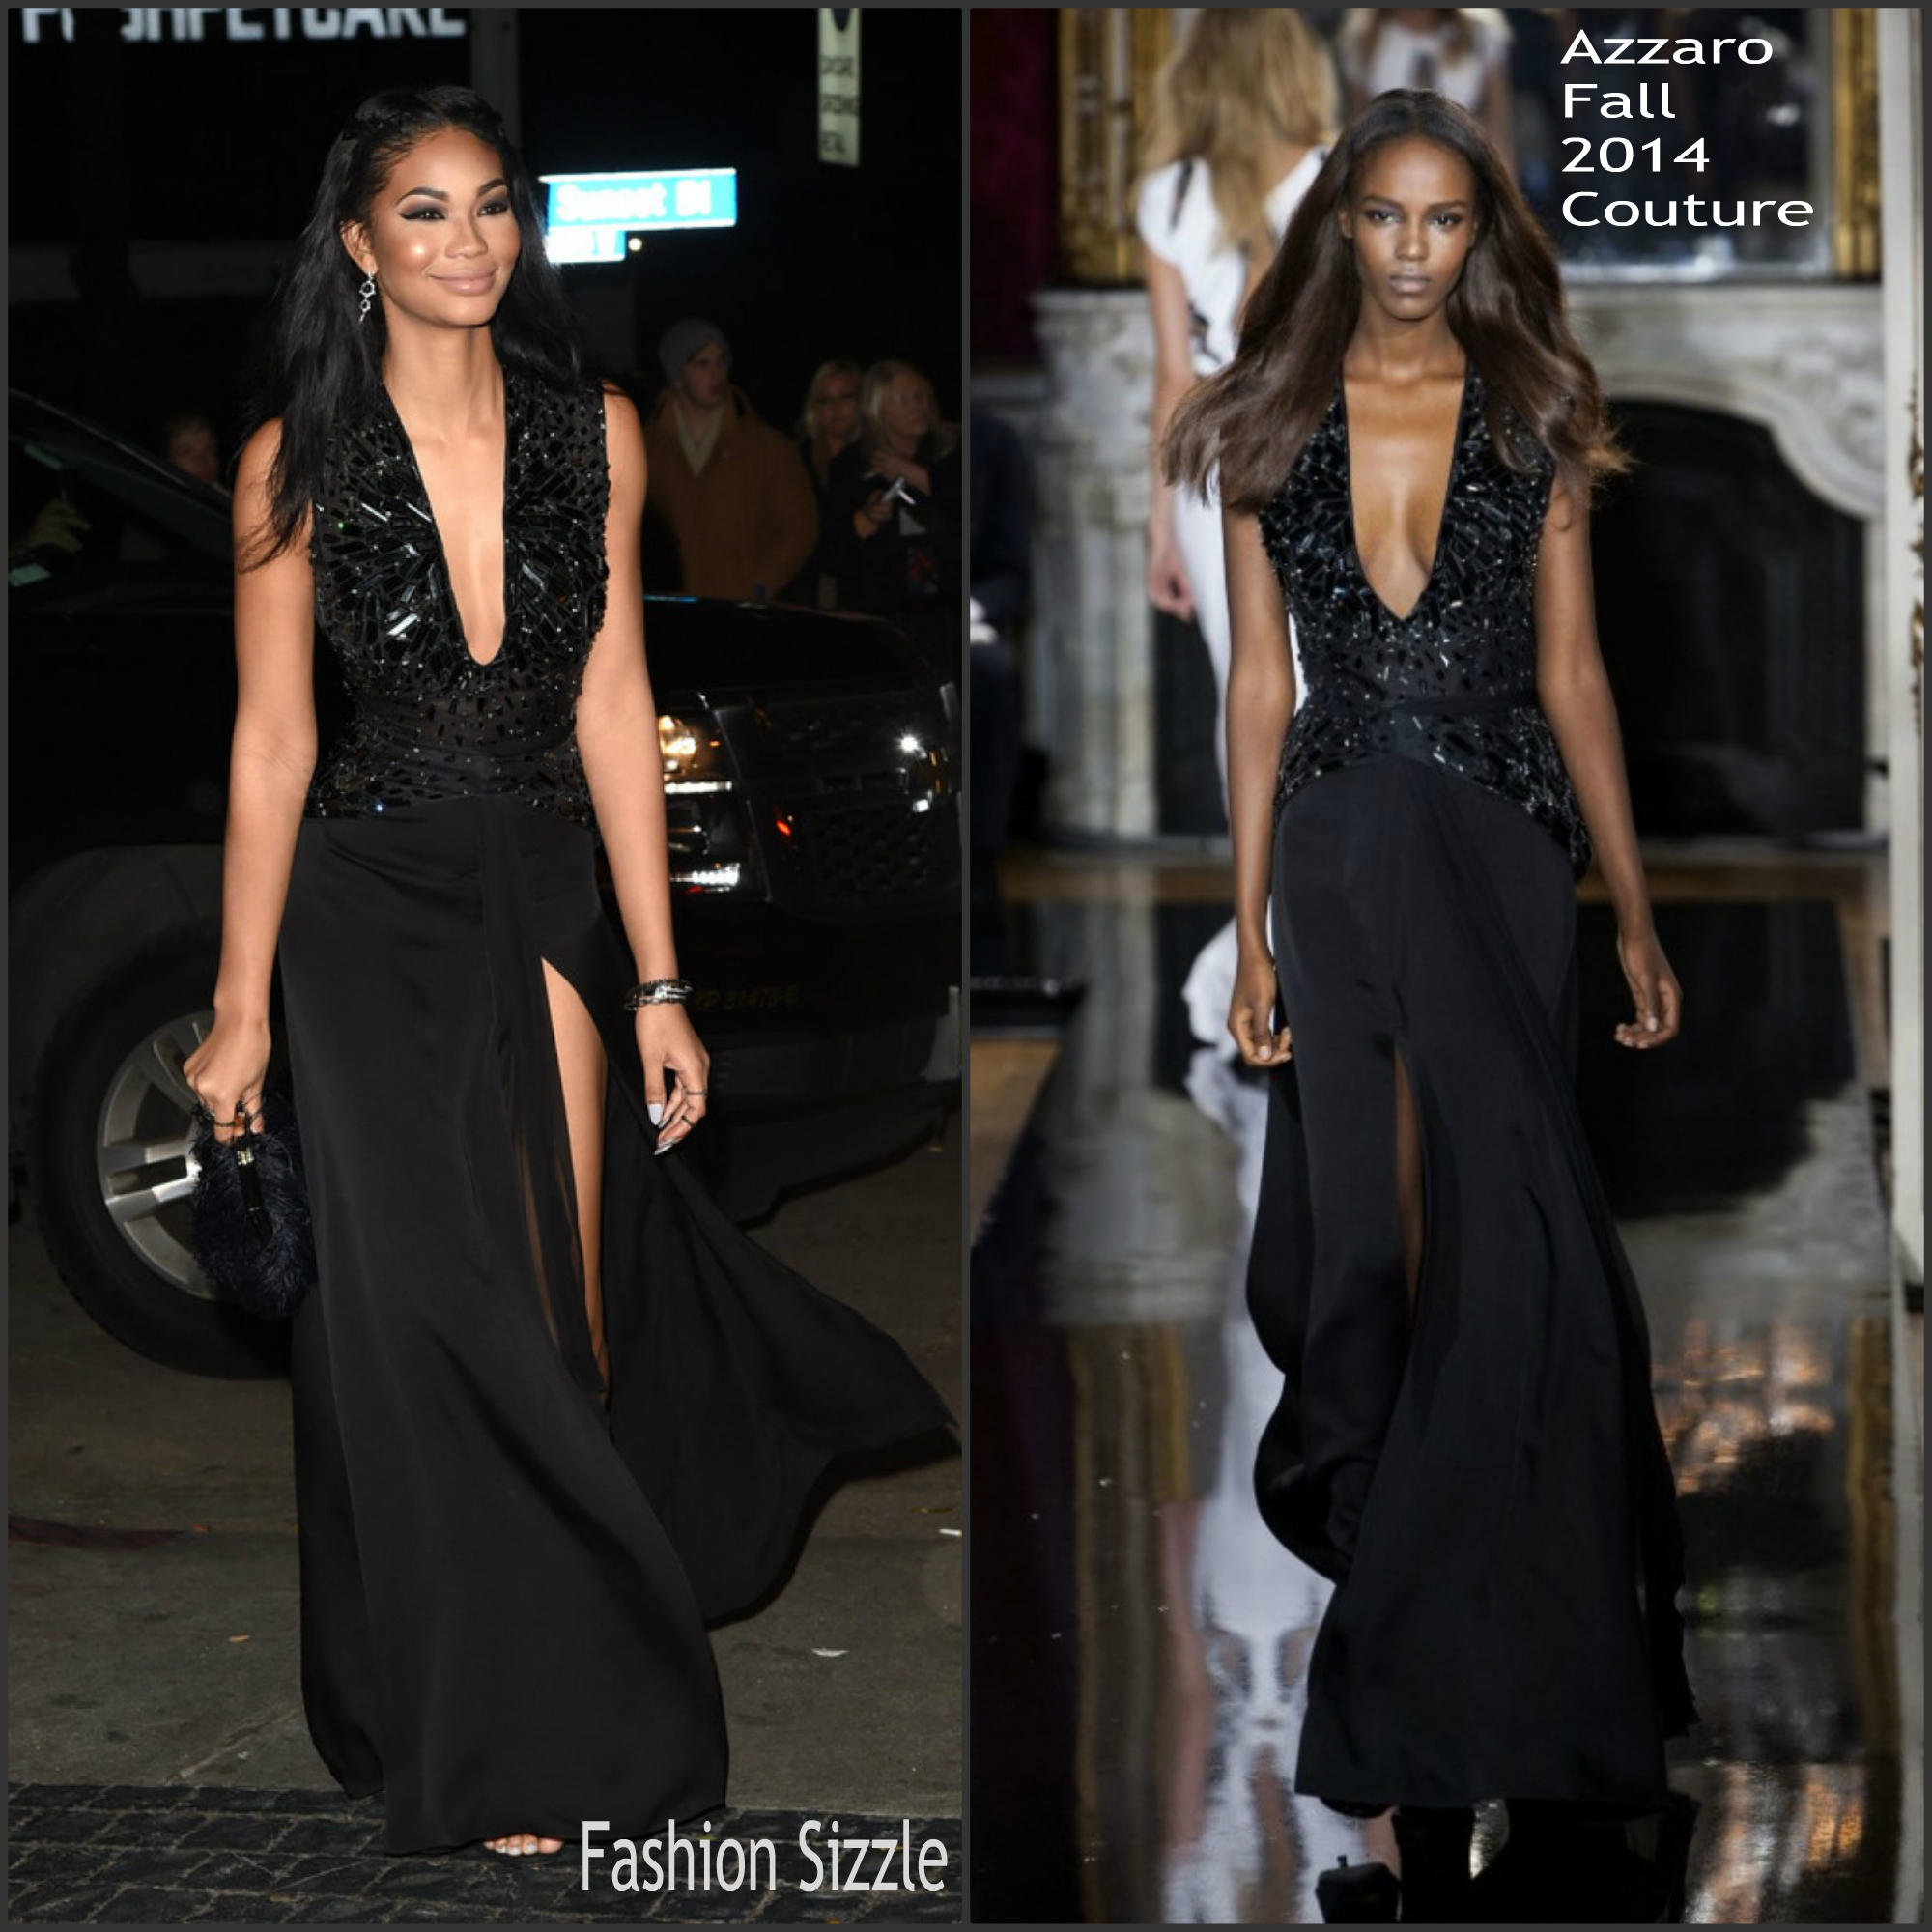 chanel-iman-in-azzaro-w-magazines-pre-golden-globes-party